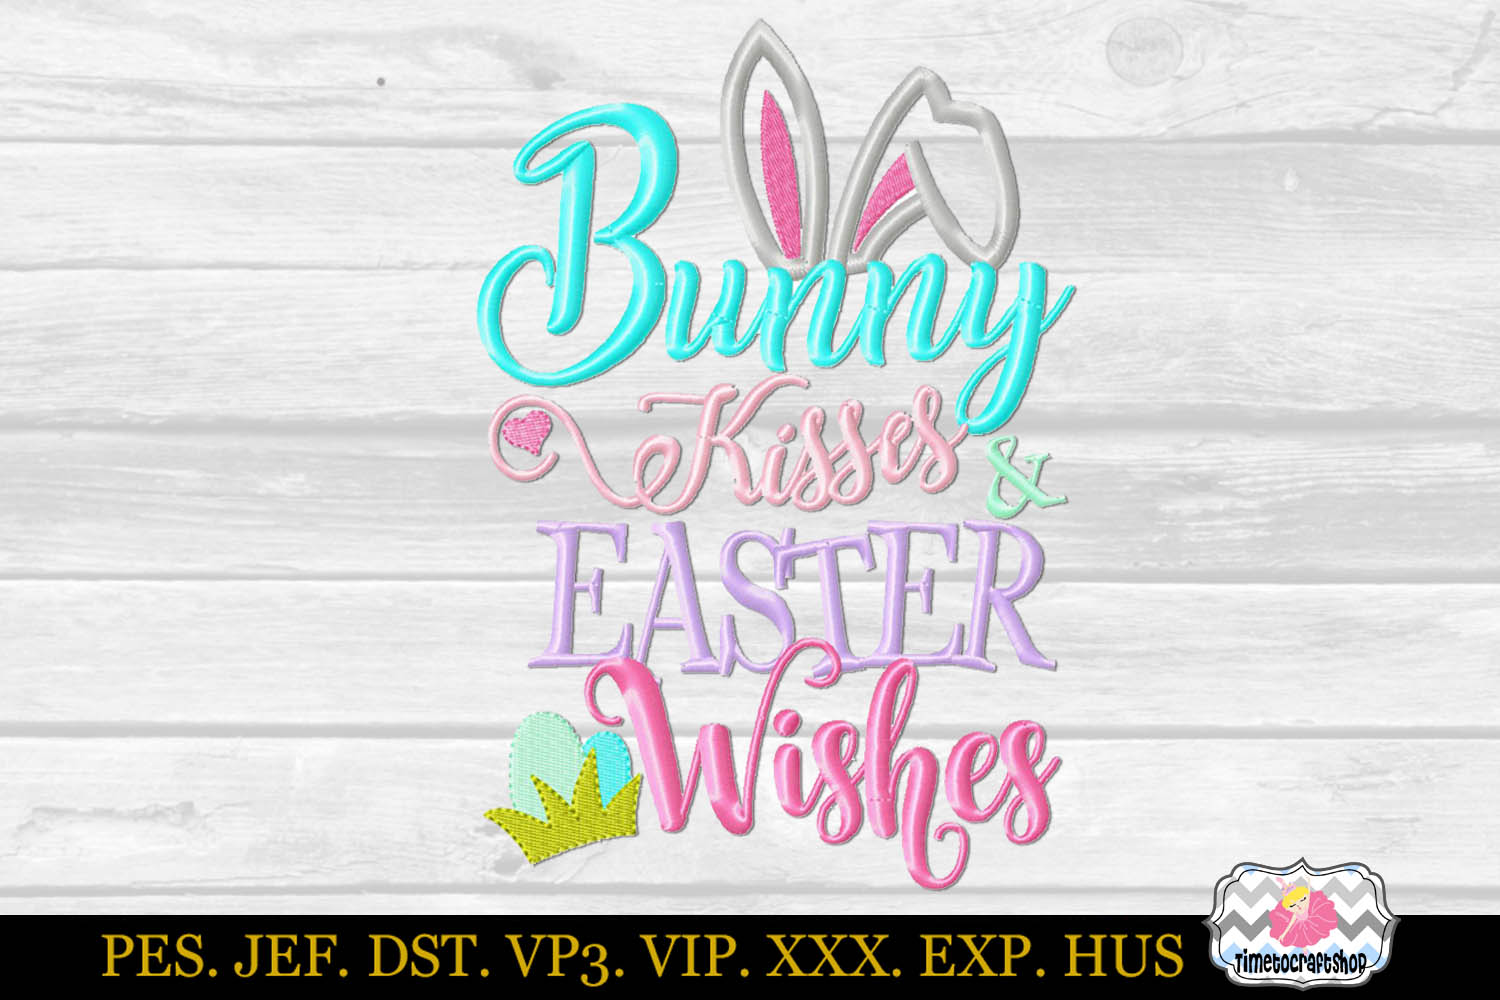 Bunny Kisses and Easter Wishes Embroidery Applique Design example image 2